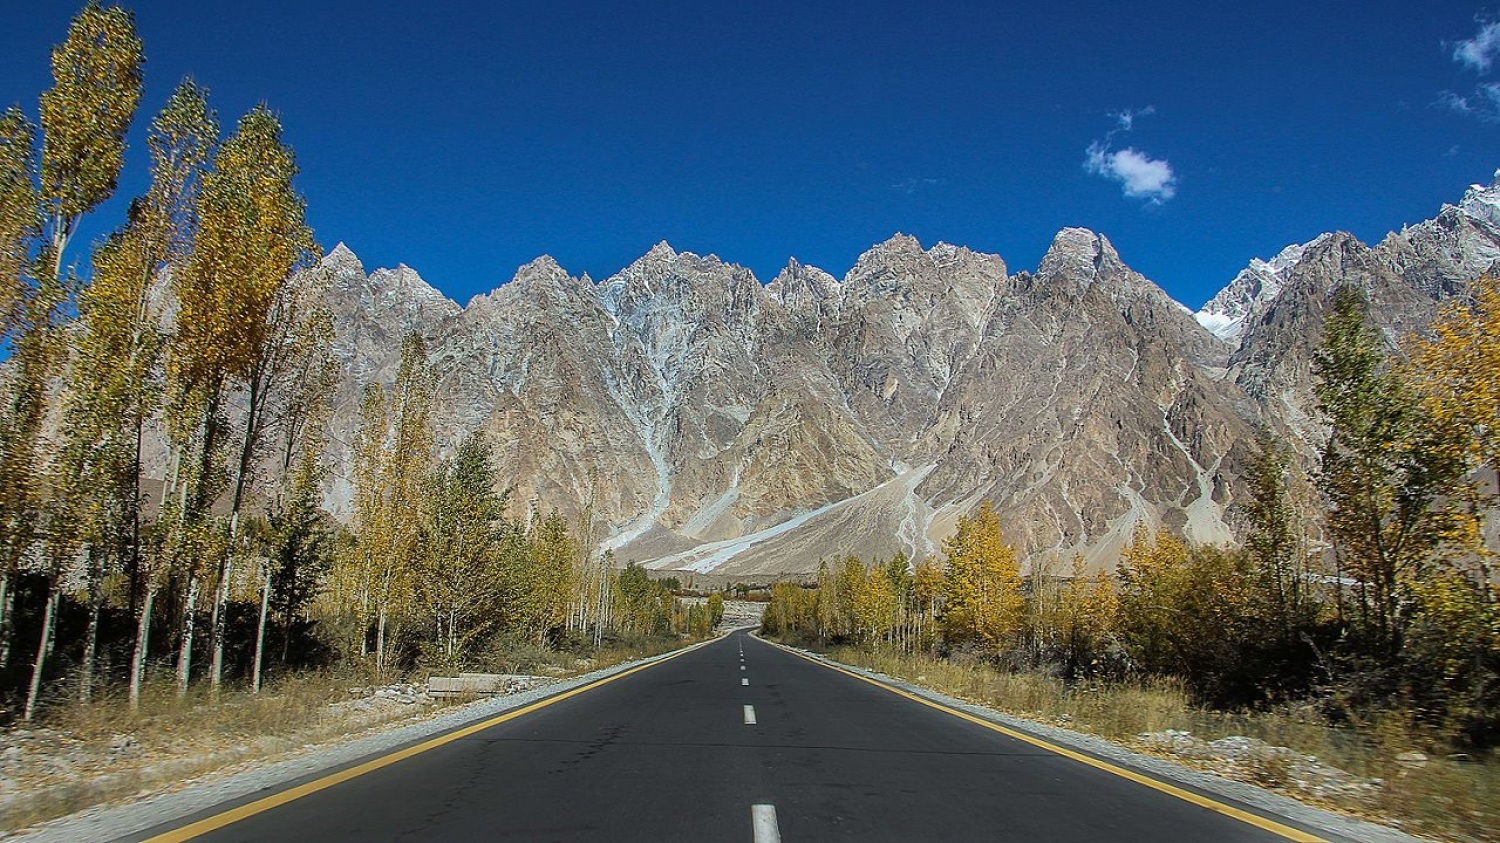 Pakistan the best of  Silk road Gravel Bike - road bike trip on karakoram highway